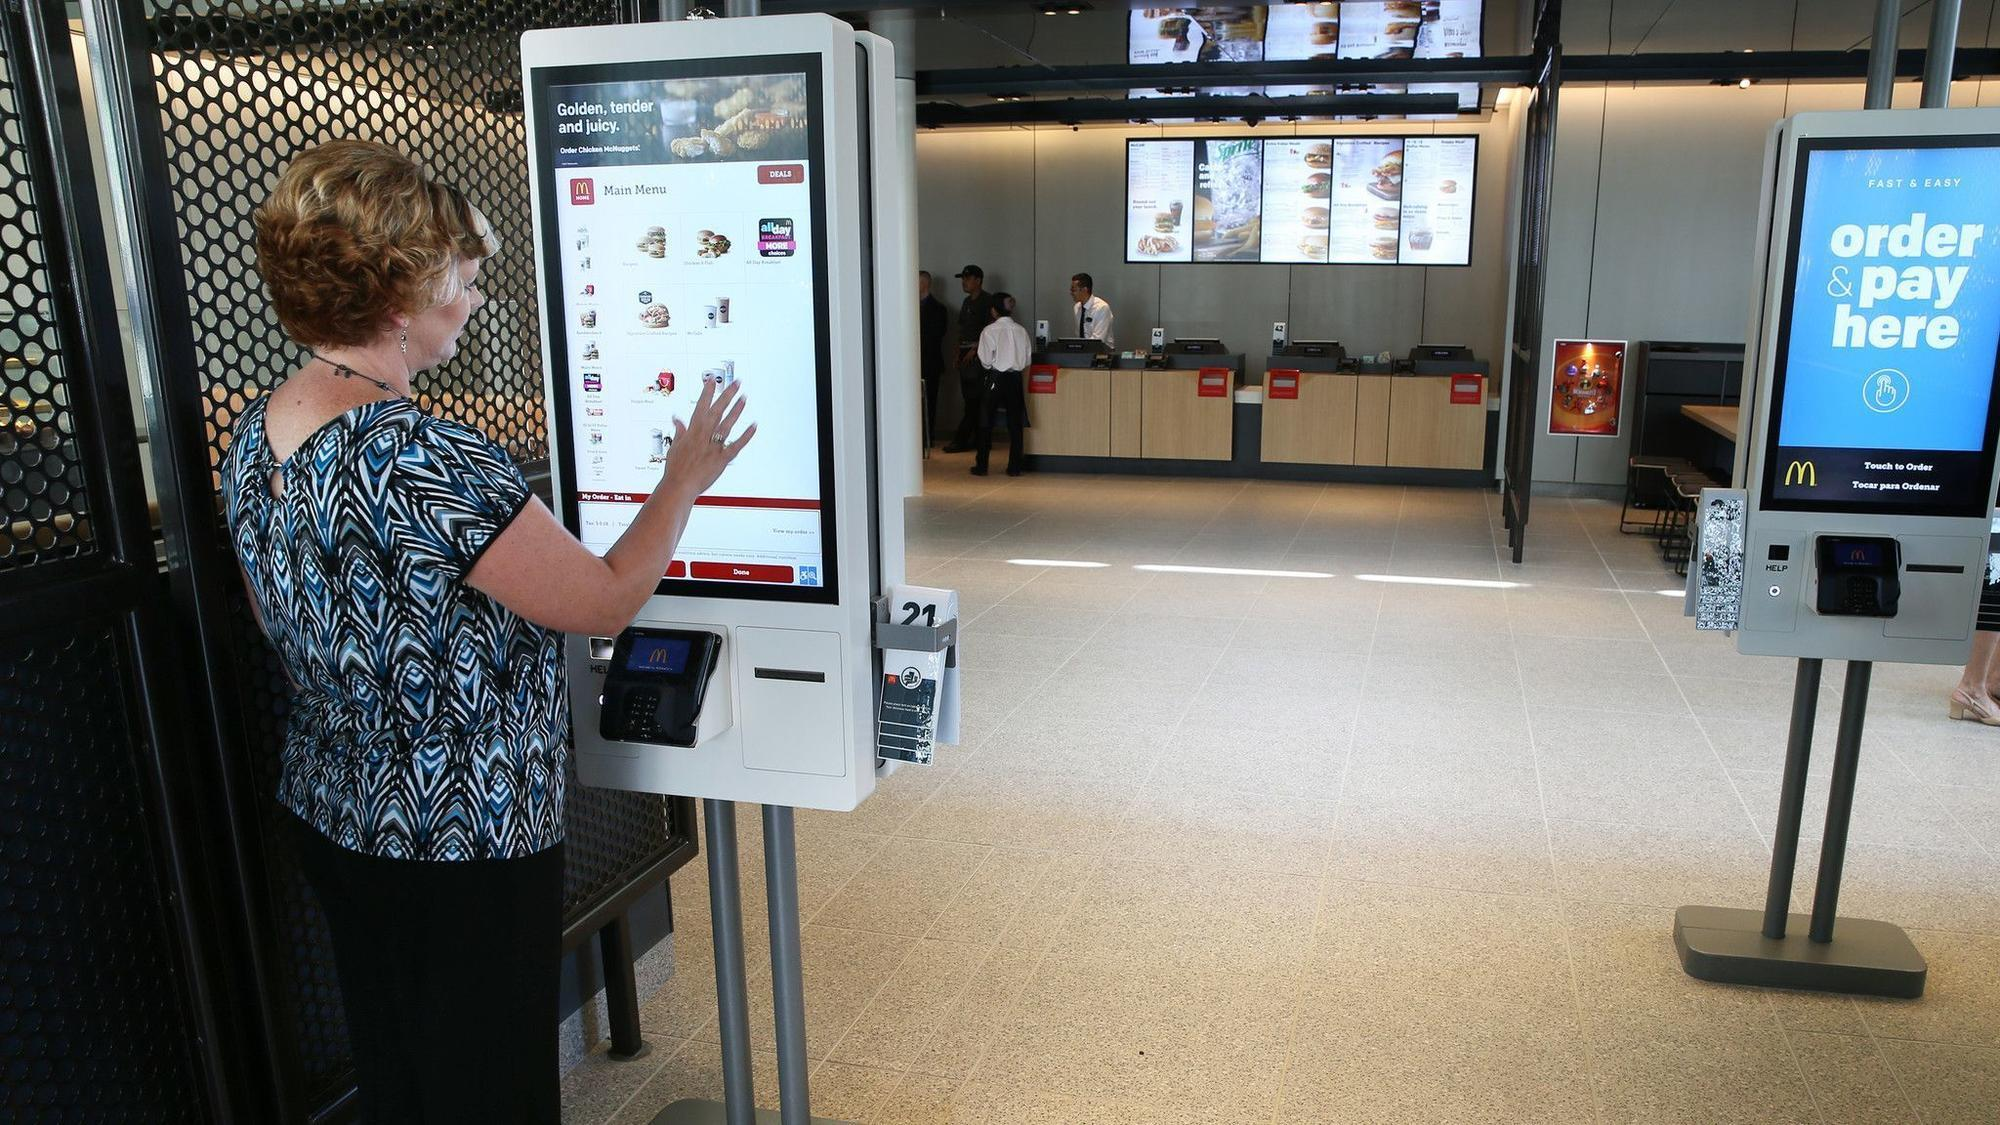 Would you like fries with that? McDonald's digitaldrive-thrus will start making personalized recommendations